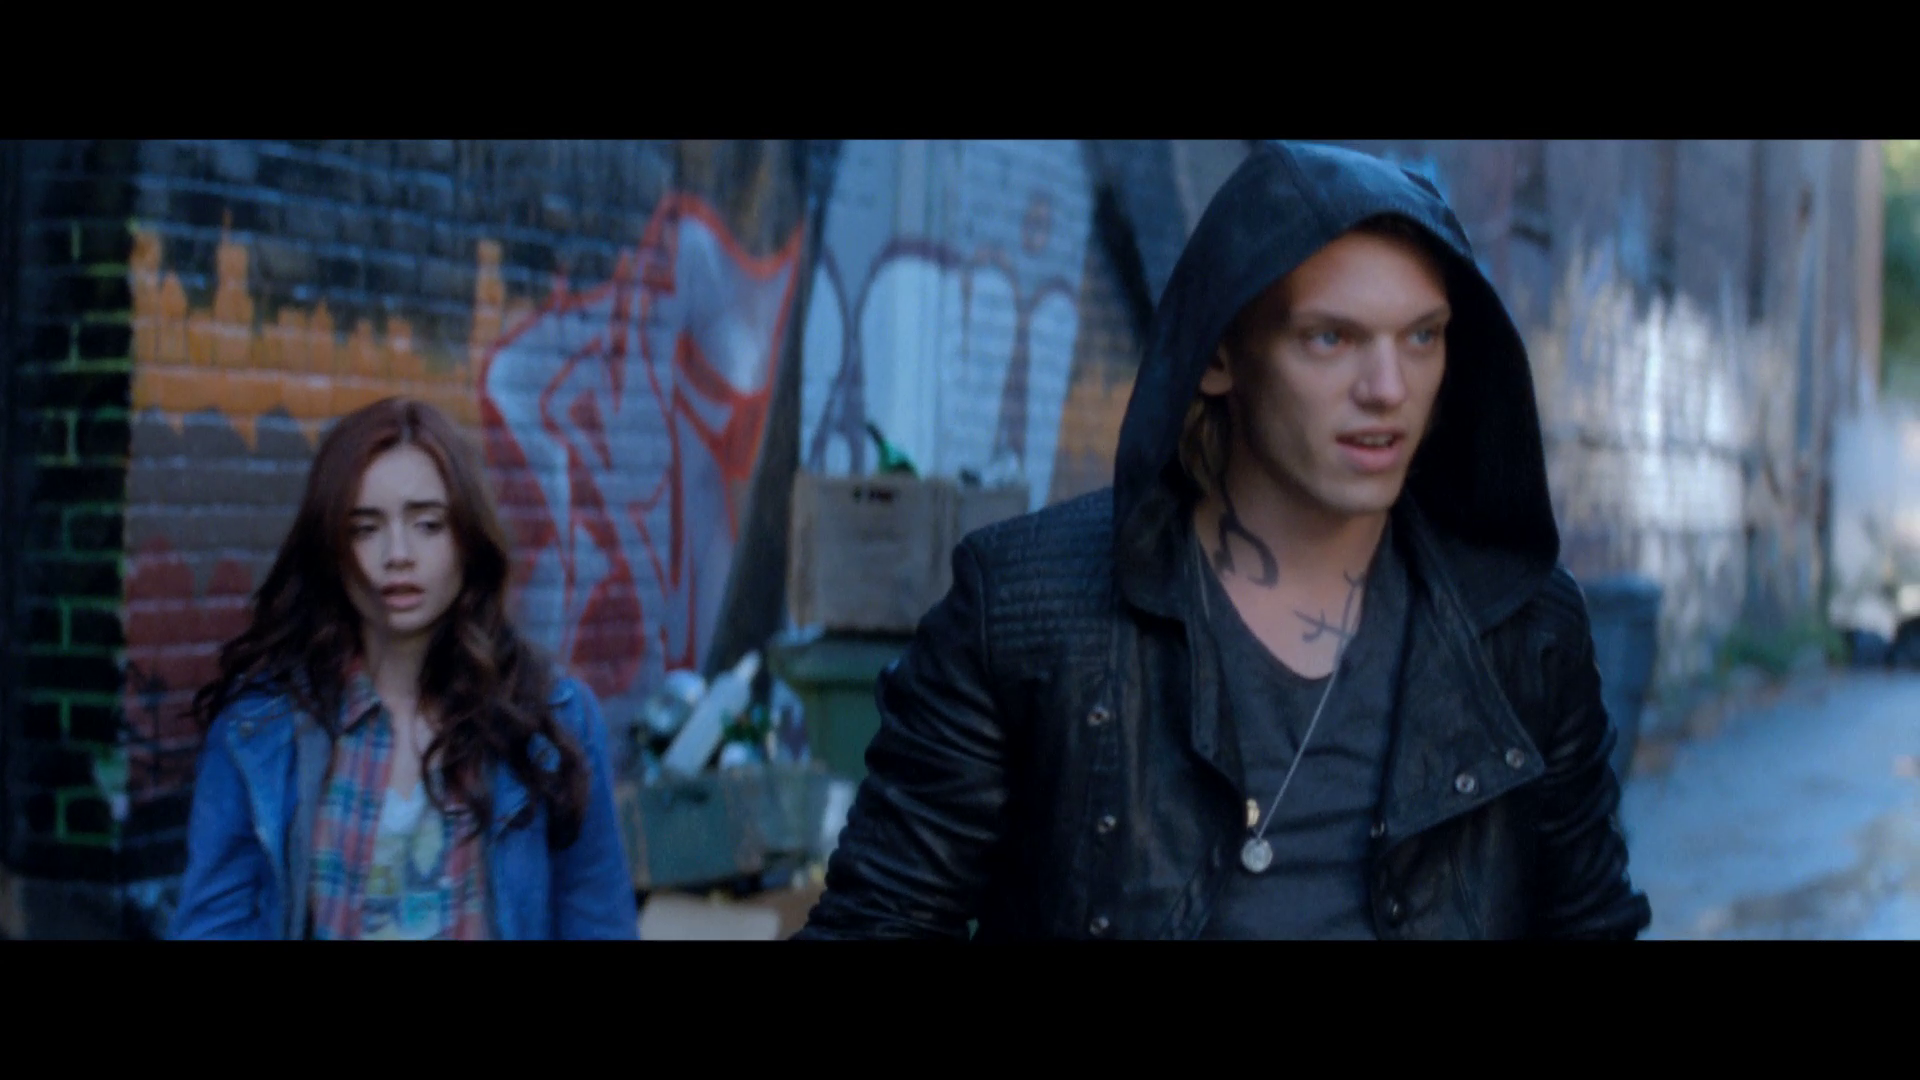 The Mortal Instruments: City of Bones - Movie Trailer 2